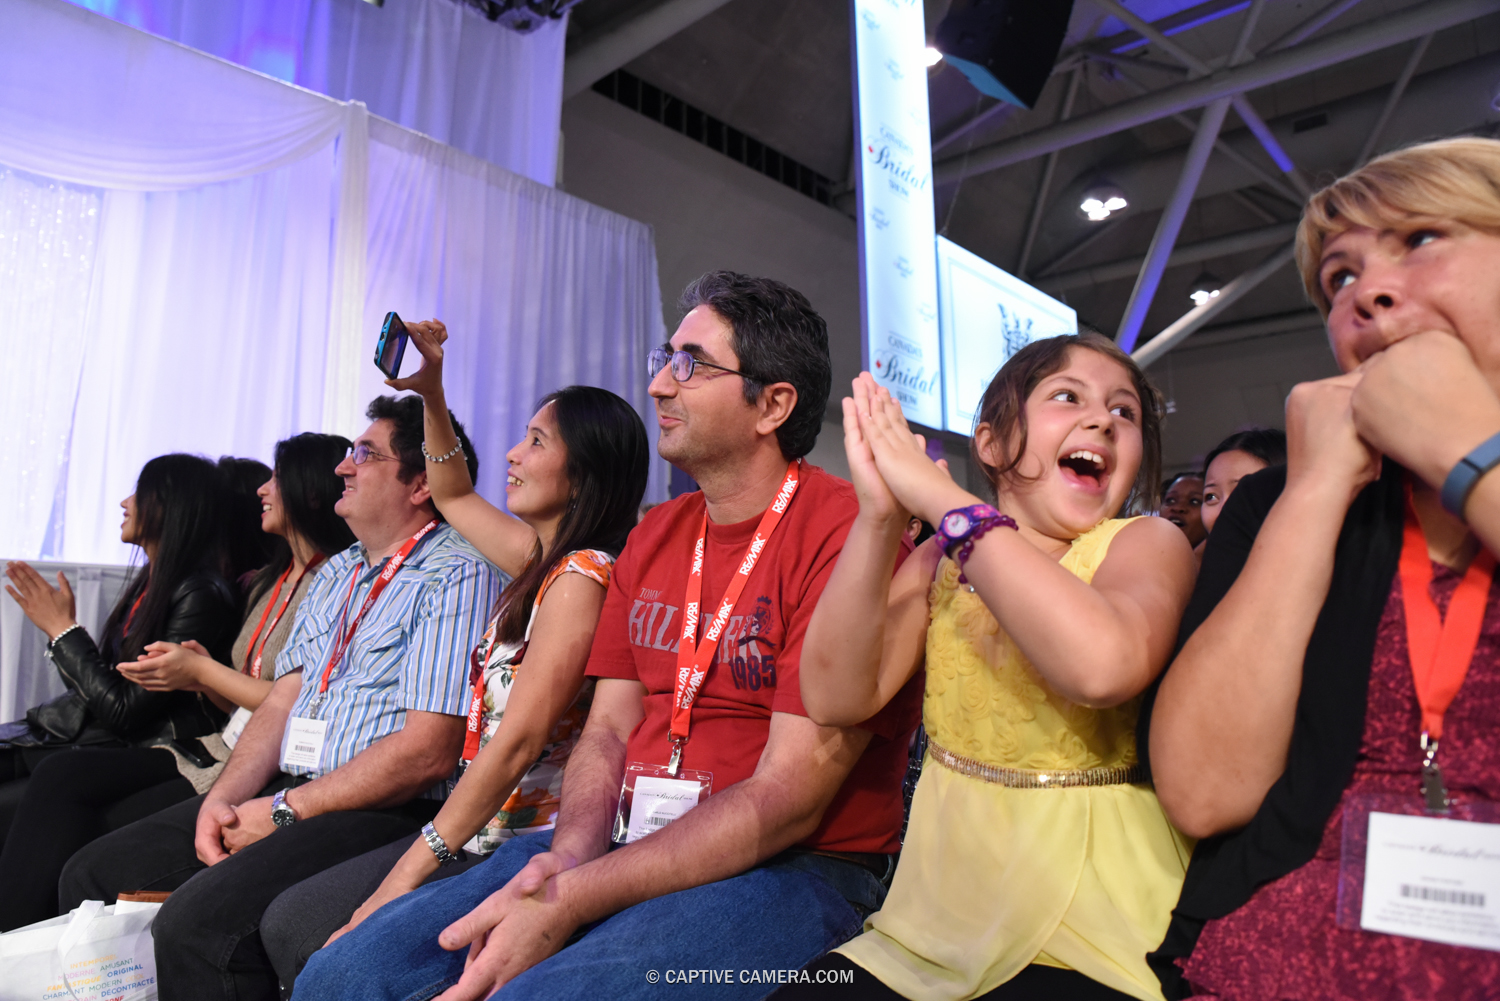 AUDIENCE REACTIONS AT CANADA'S BRIDAL SHOW